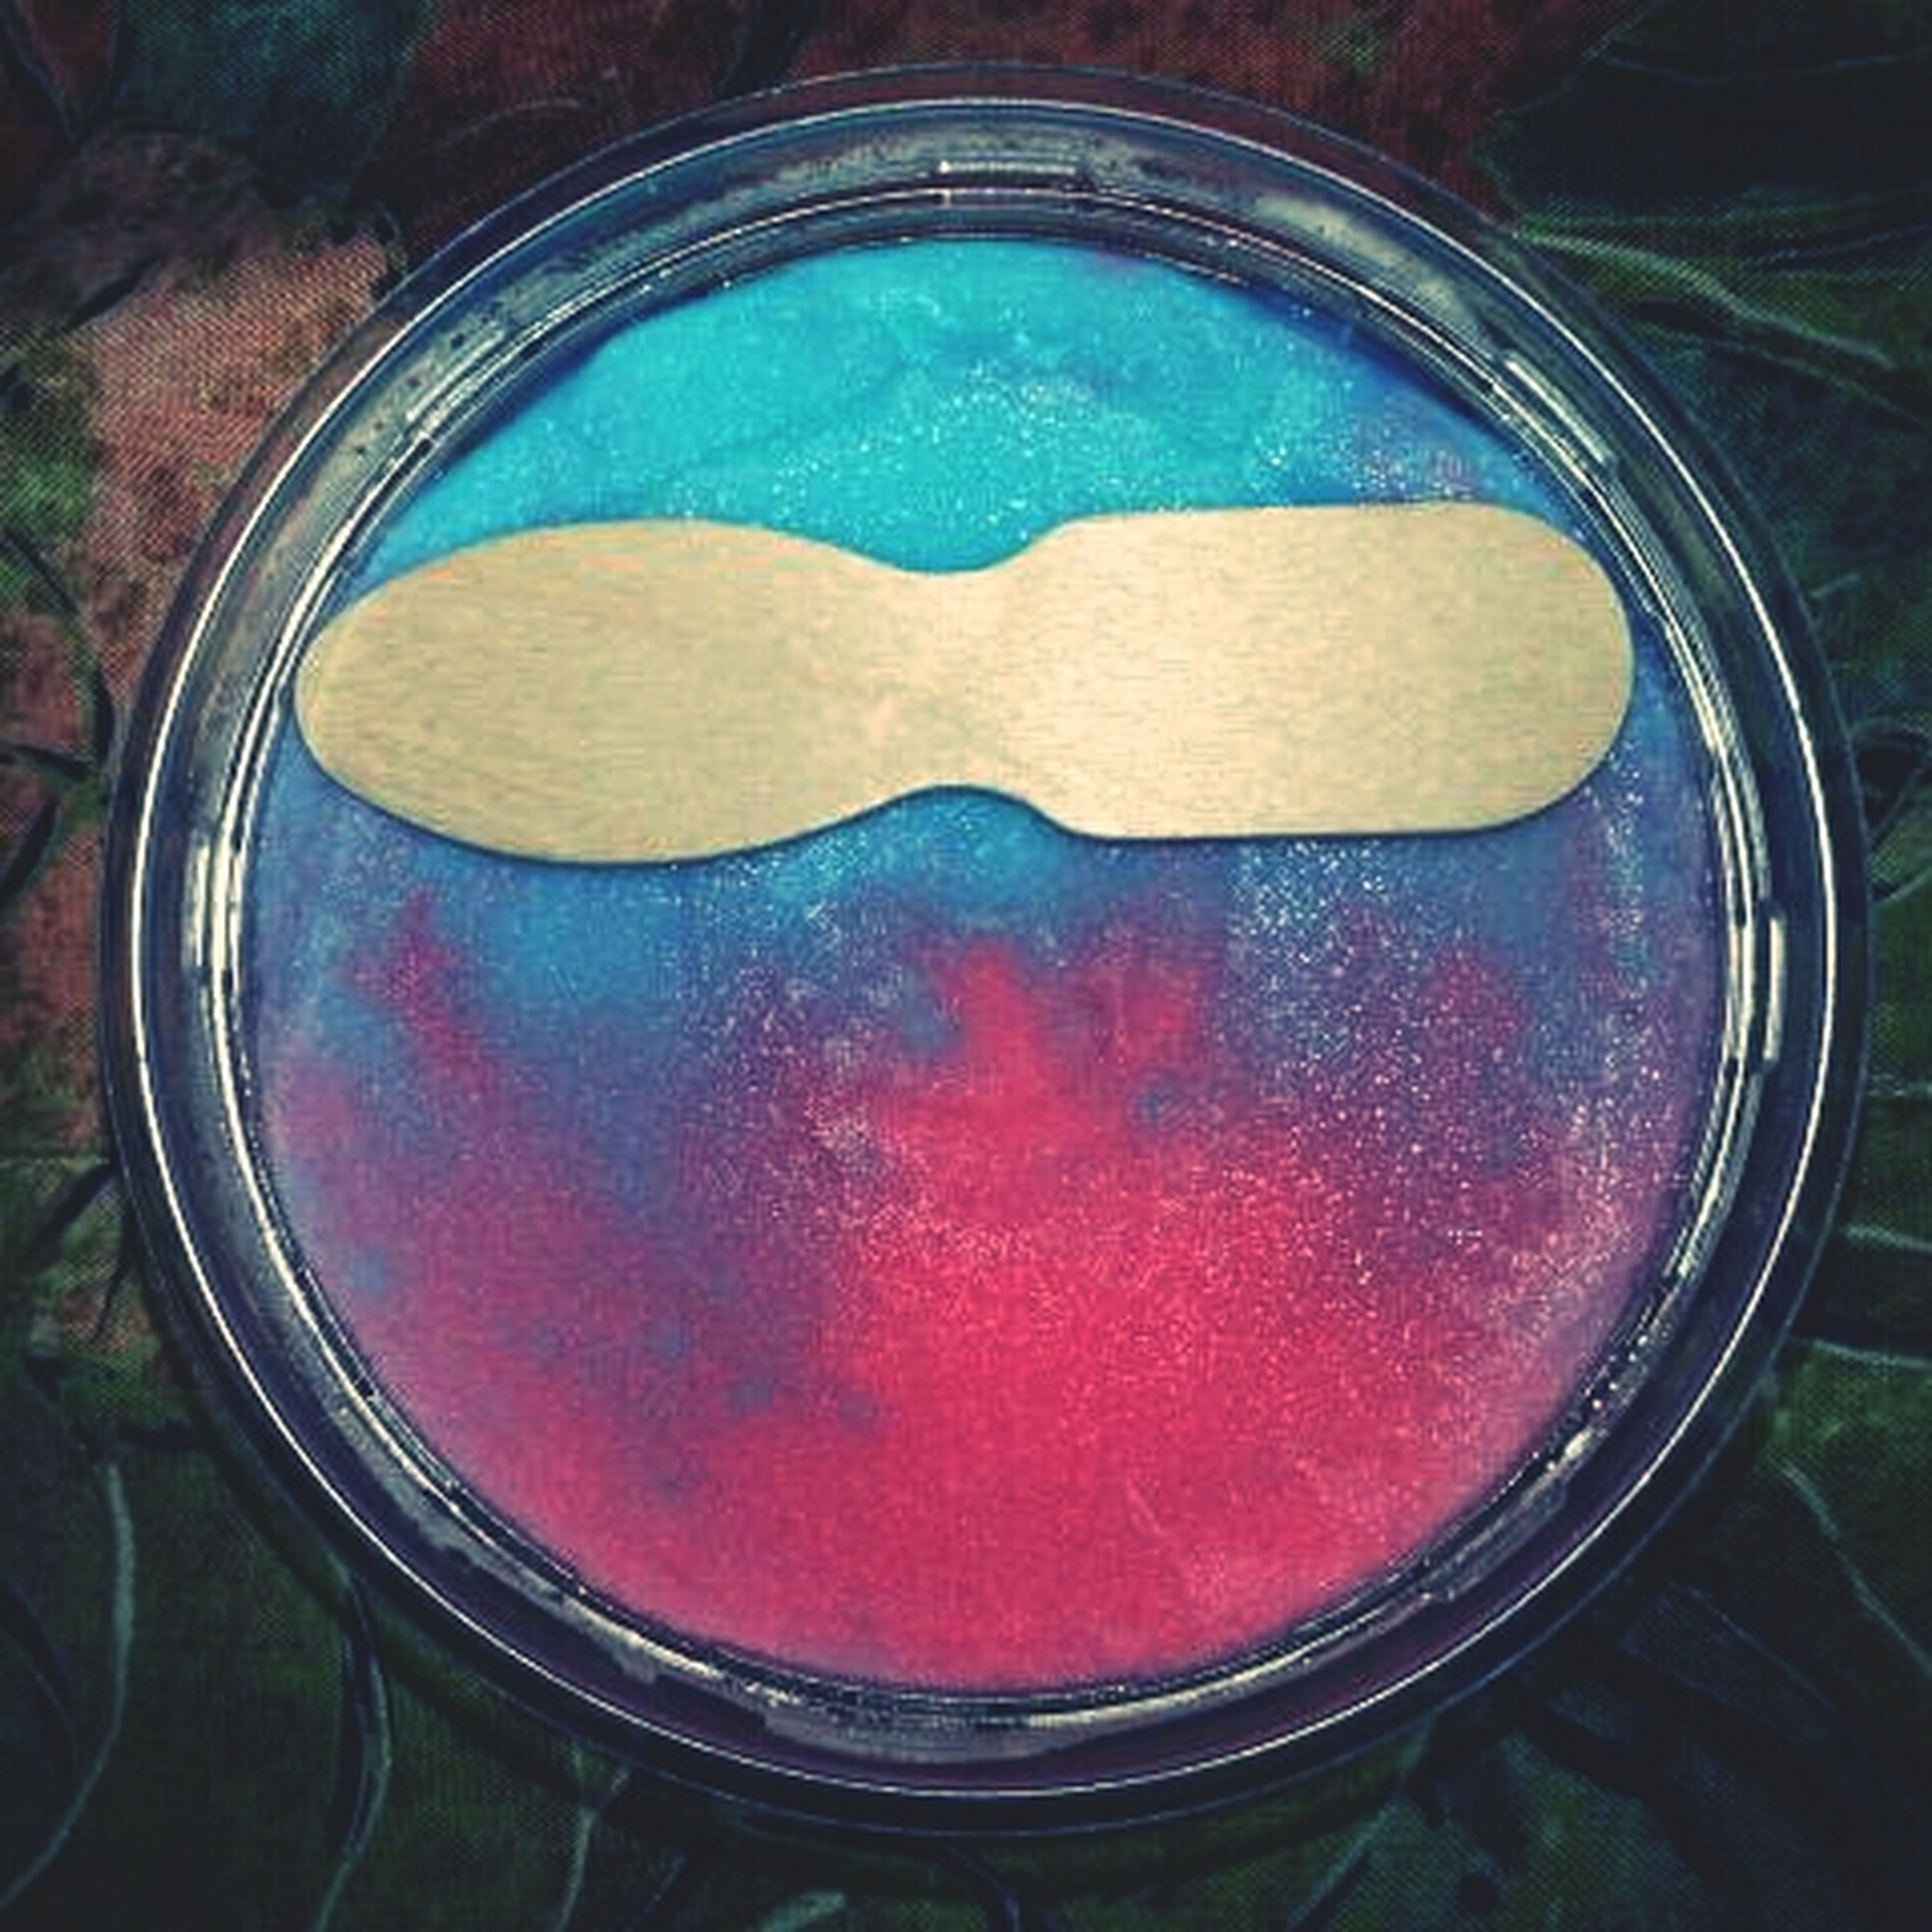 red, close-up, glass - material, circle, transparent, indoors, blue, geometric shape, no people, glass, window, shape, reflection, day, directly above, drop, high angle view, freshness, wet